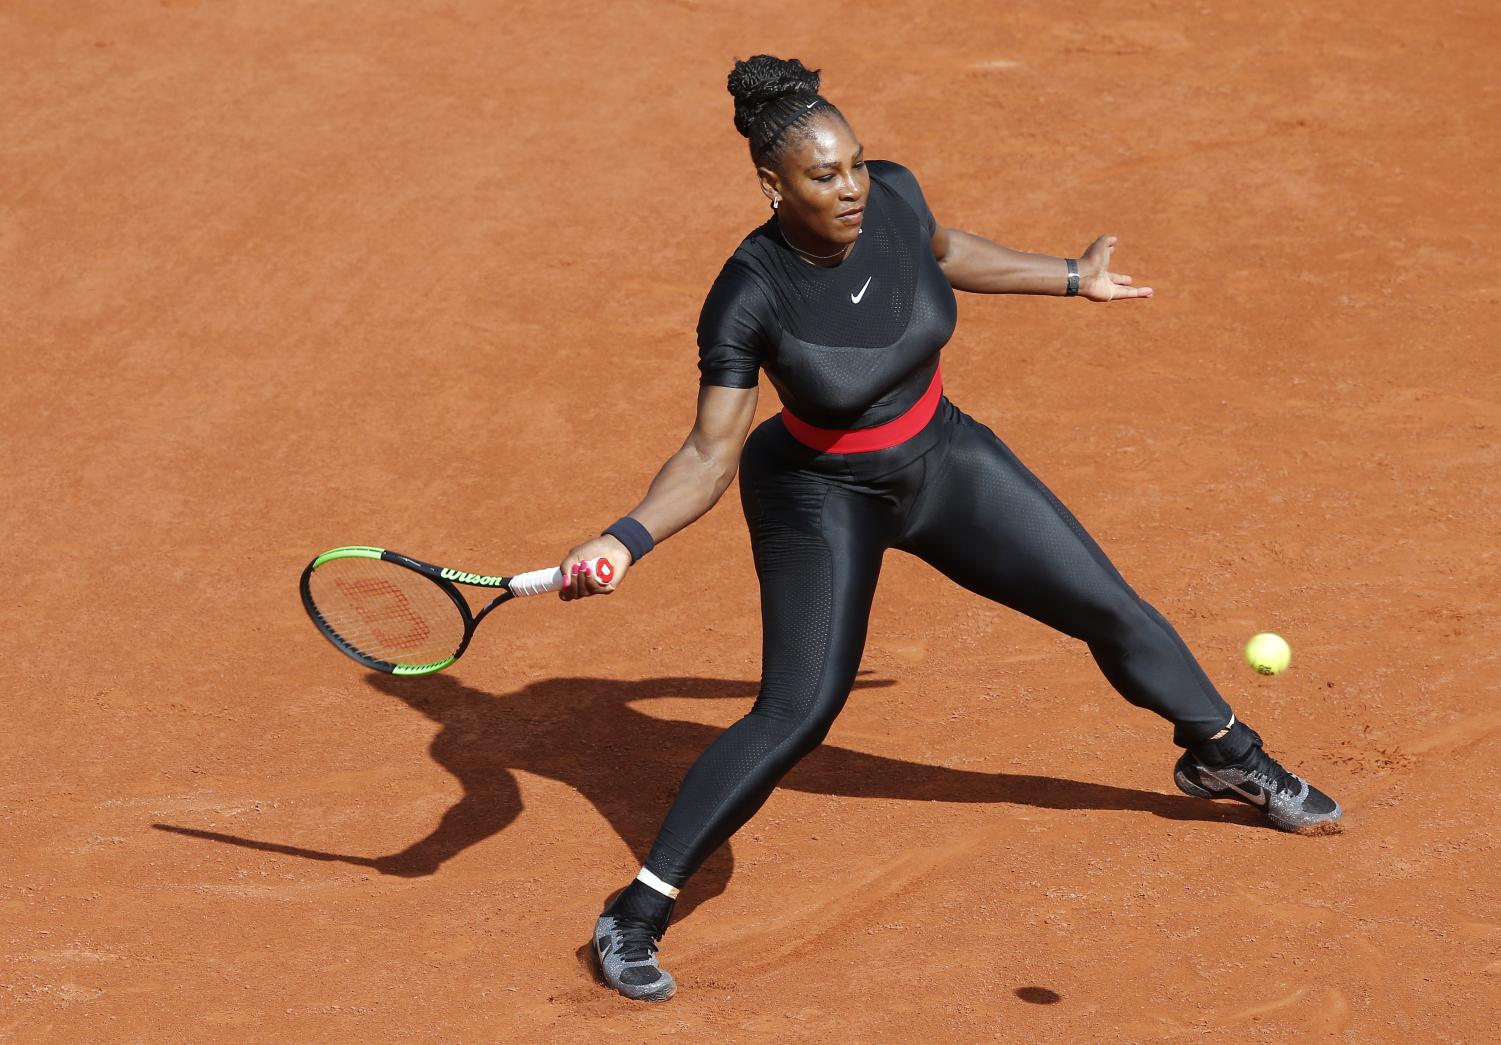 Serena Williams of the U.S. returns a shot against Krystyna Pliskova of the Czech Republic during their first round match of the French Open tennis tournament at the Roland Garros stadium in Paris, France, Tuesday, May 29, 2018.